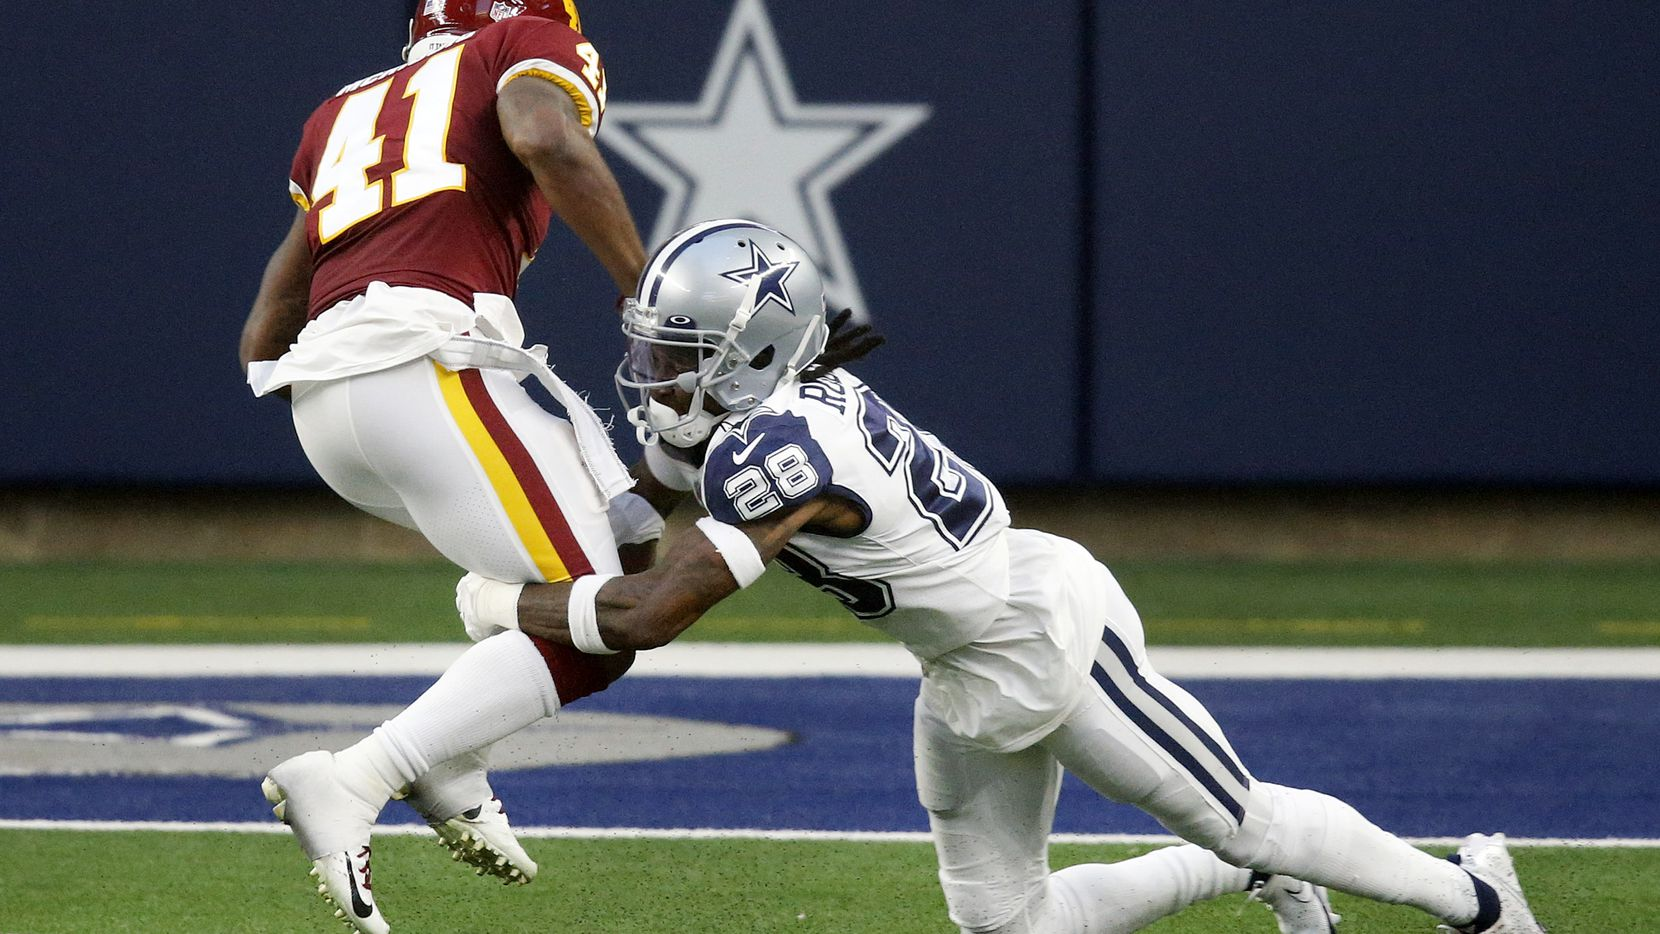 Dallas Cowboys defensive back Rashard Robinson (28) attempts to tackle Washington Football Team defensive back Dee Delaney (41) during the second quarter at AT&T Stadium in Arlington, Thursday, November 26, 2020.